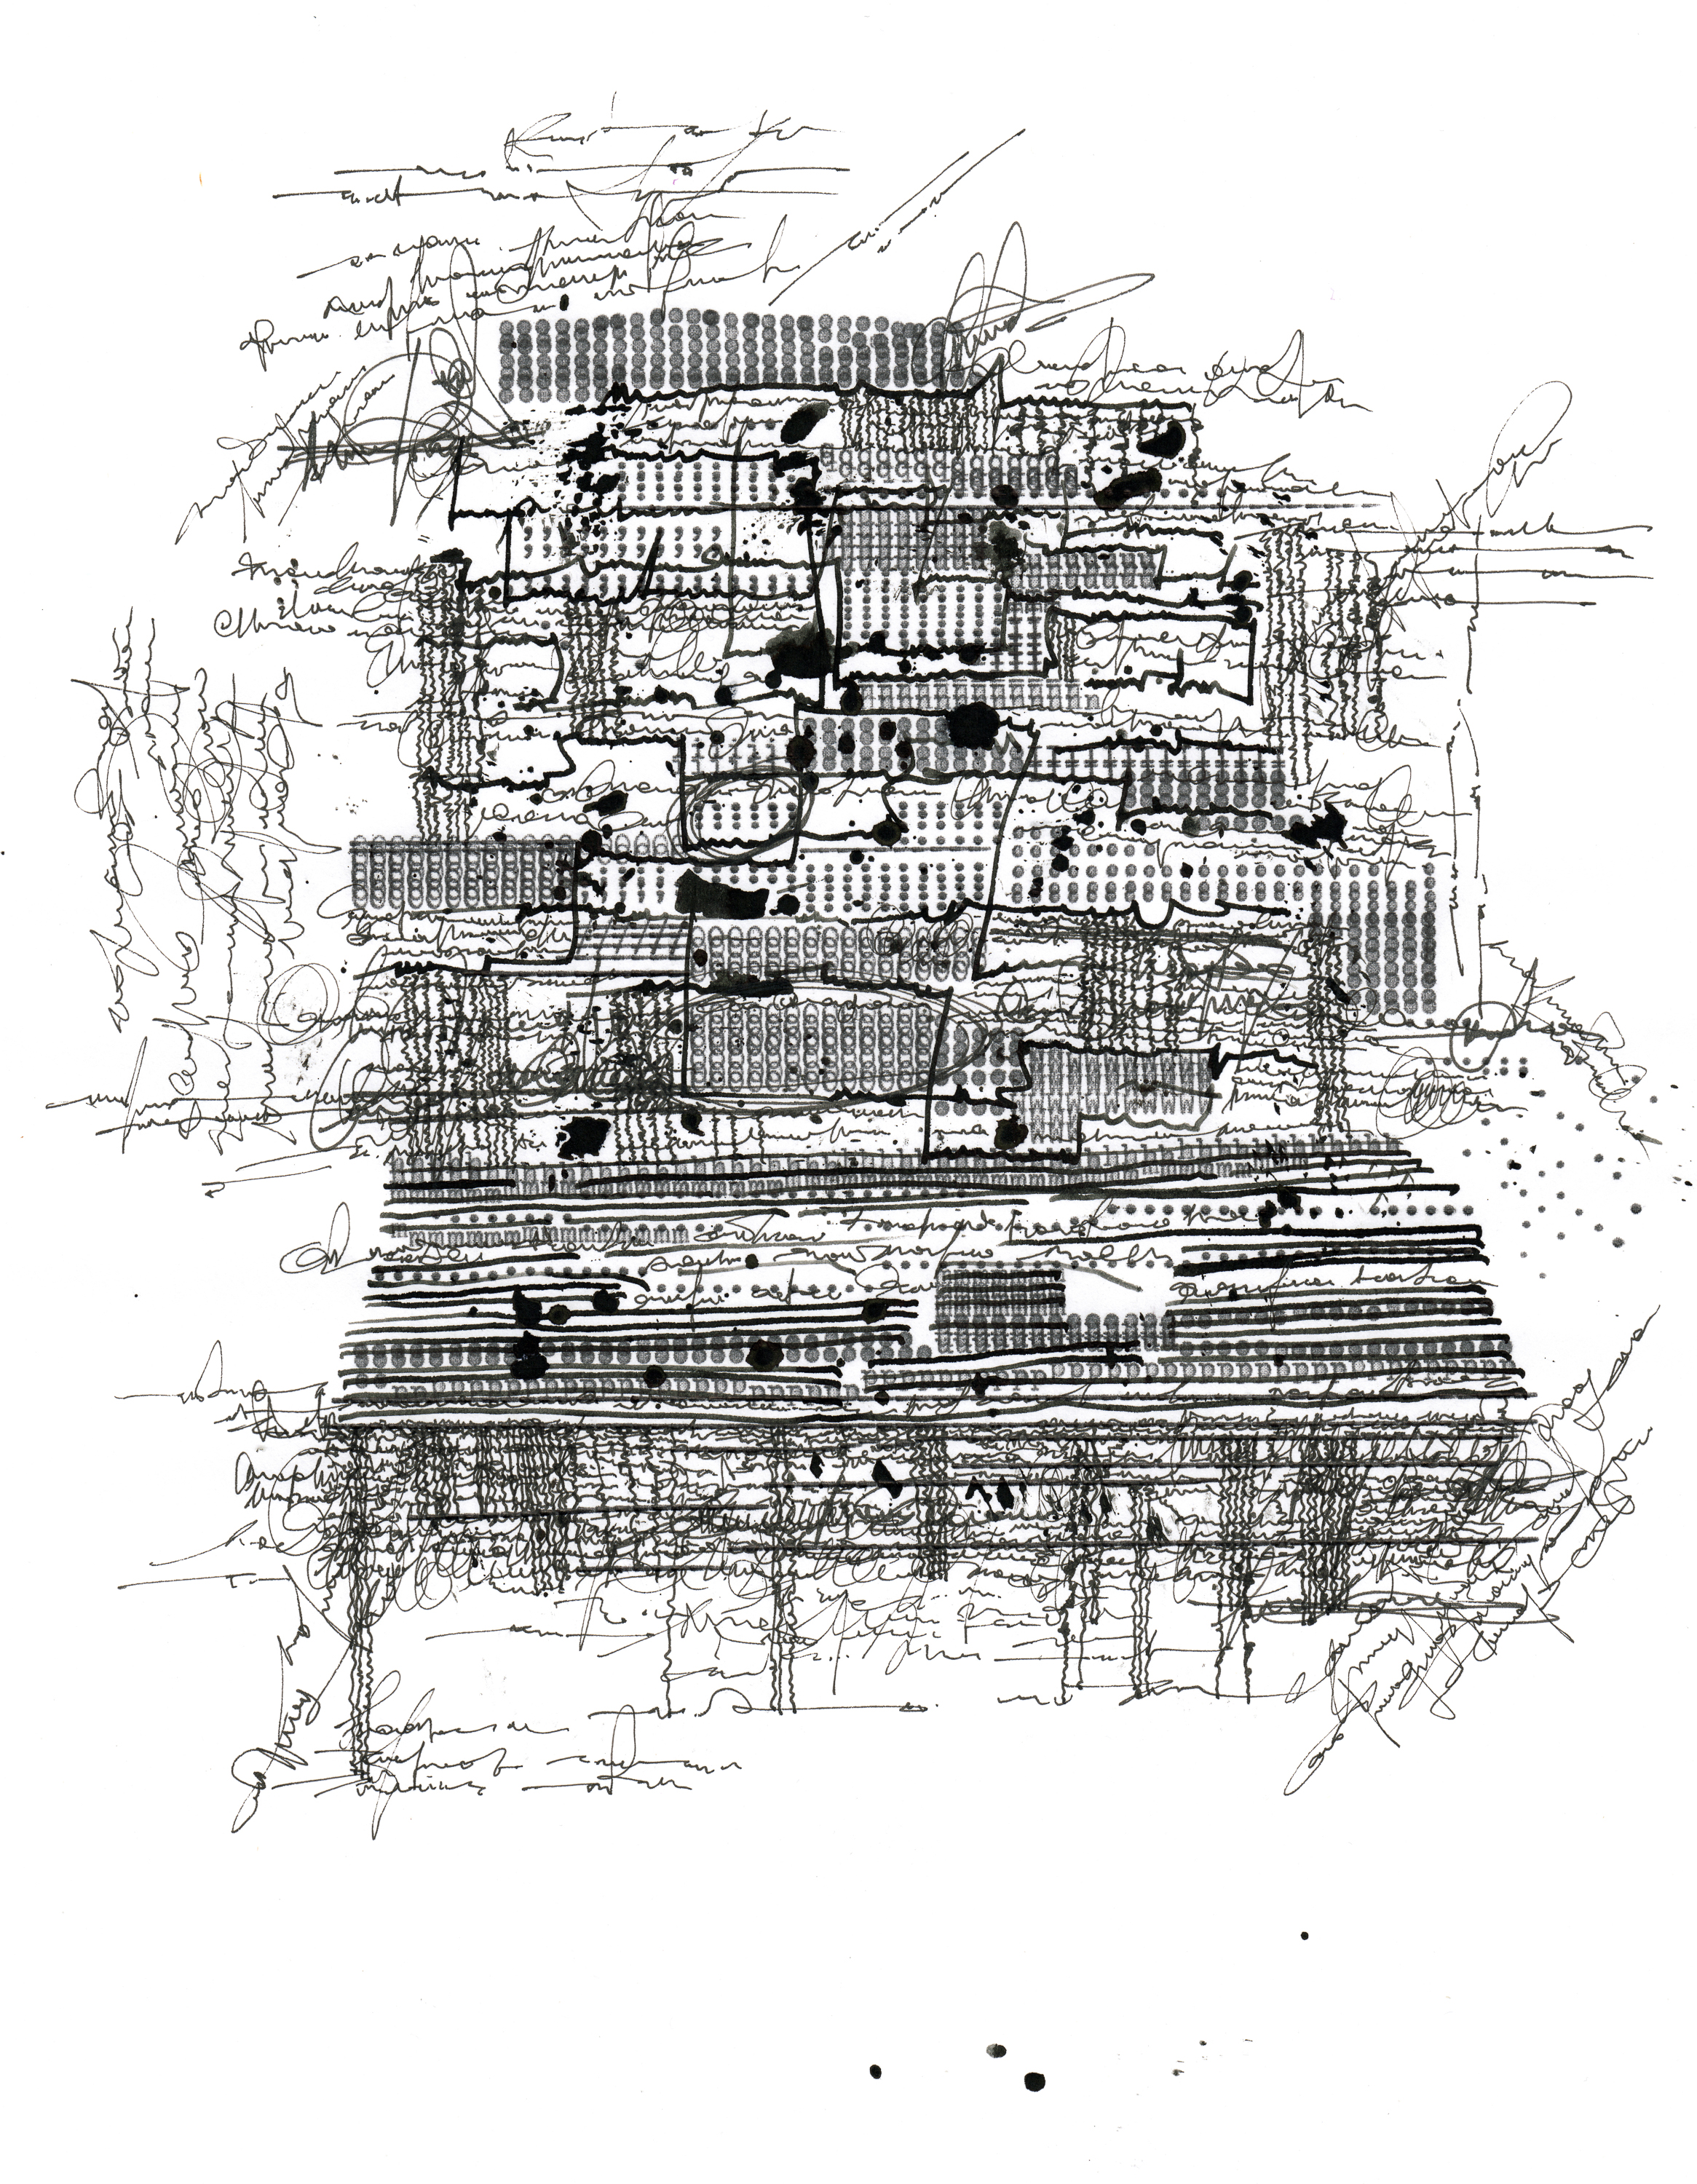 notes on a found texture   paper, ink, typewriter